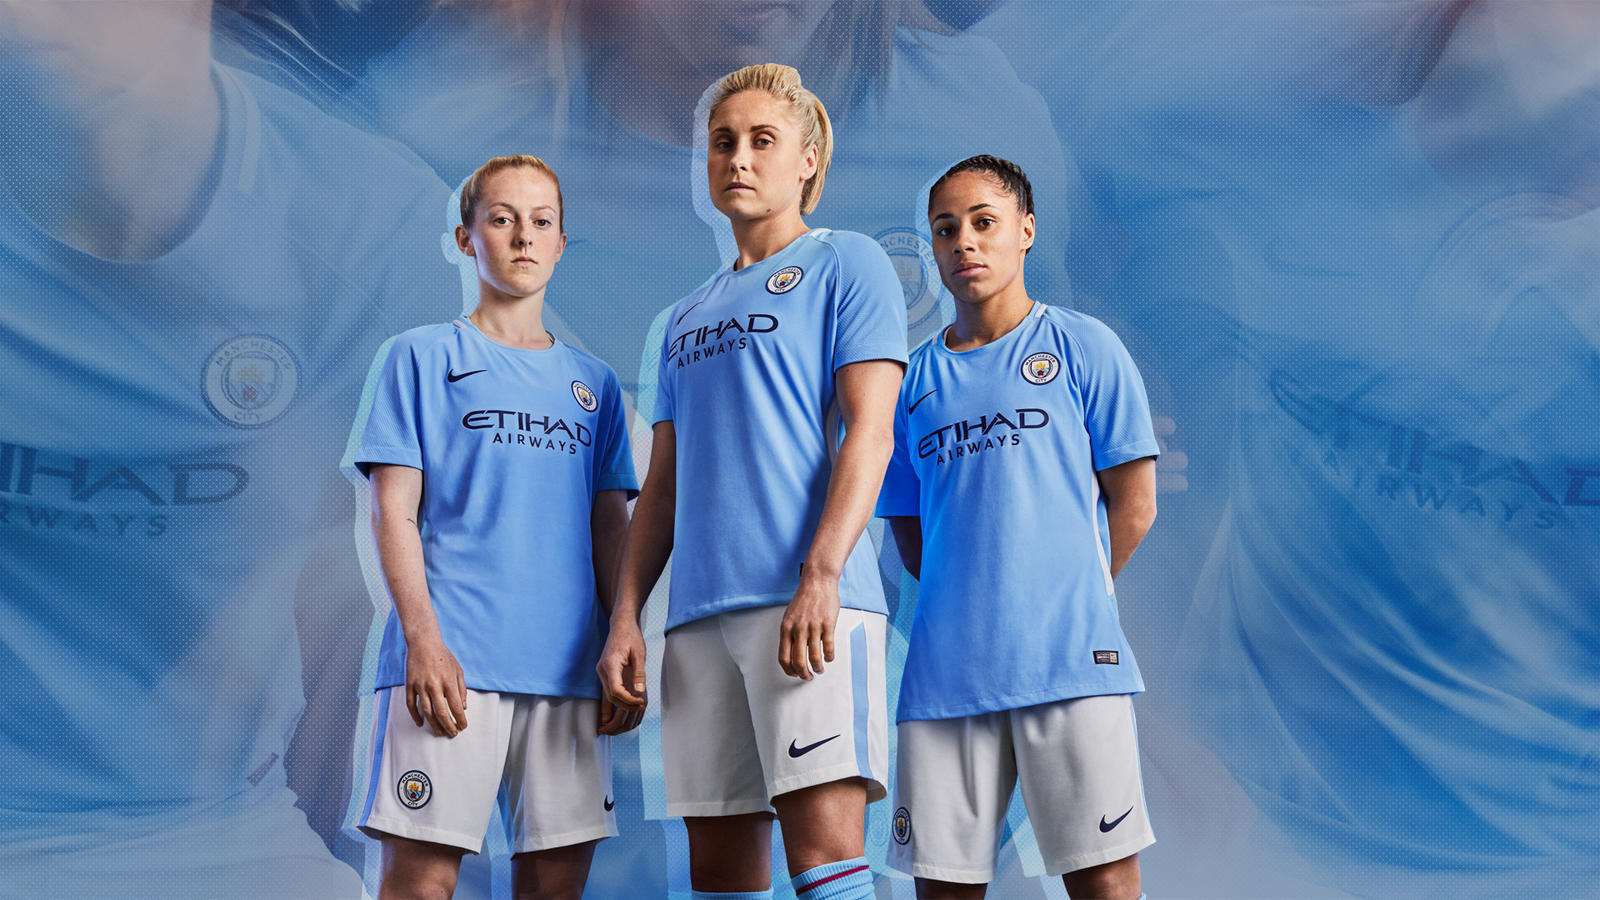 new style b0a51 4754e Manchester City FC 2017/18 Nike Home Kit - FOOTBALL FASHION.ORG